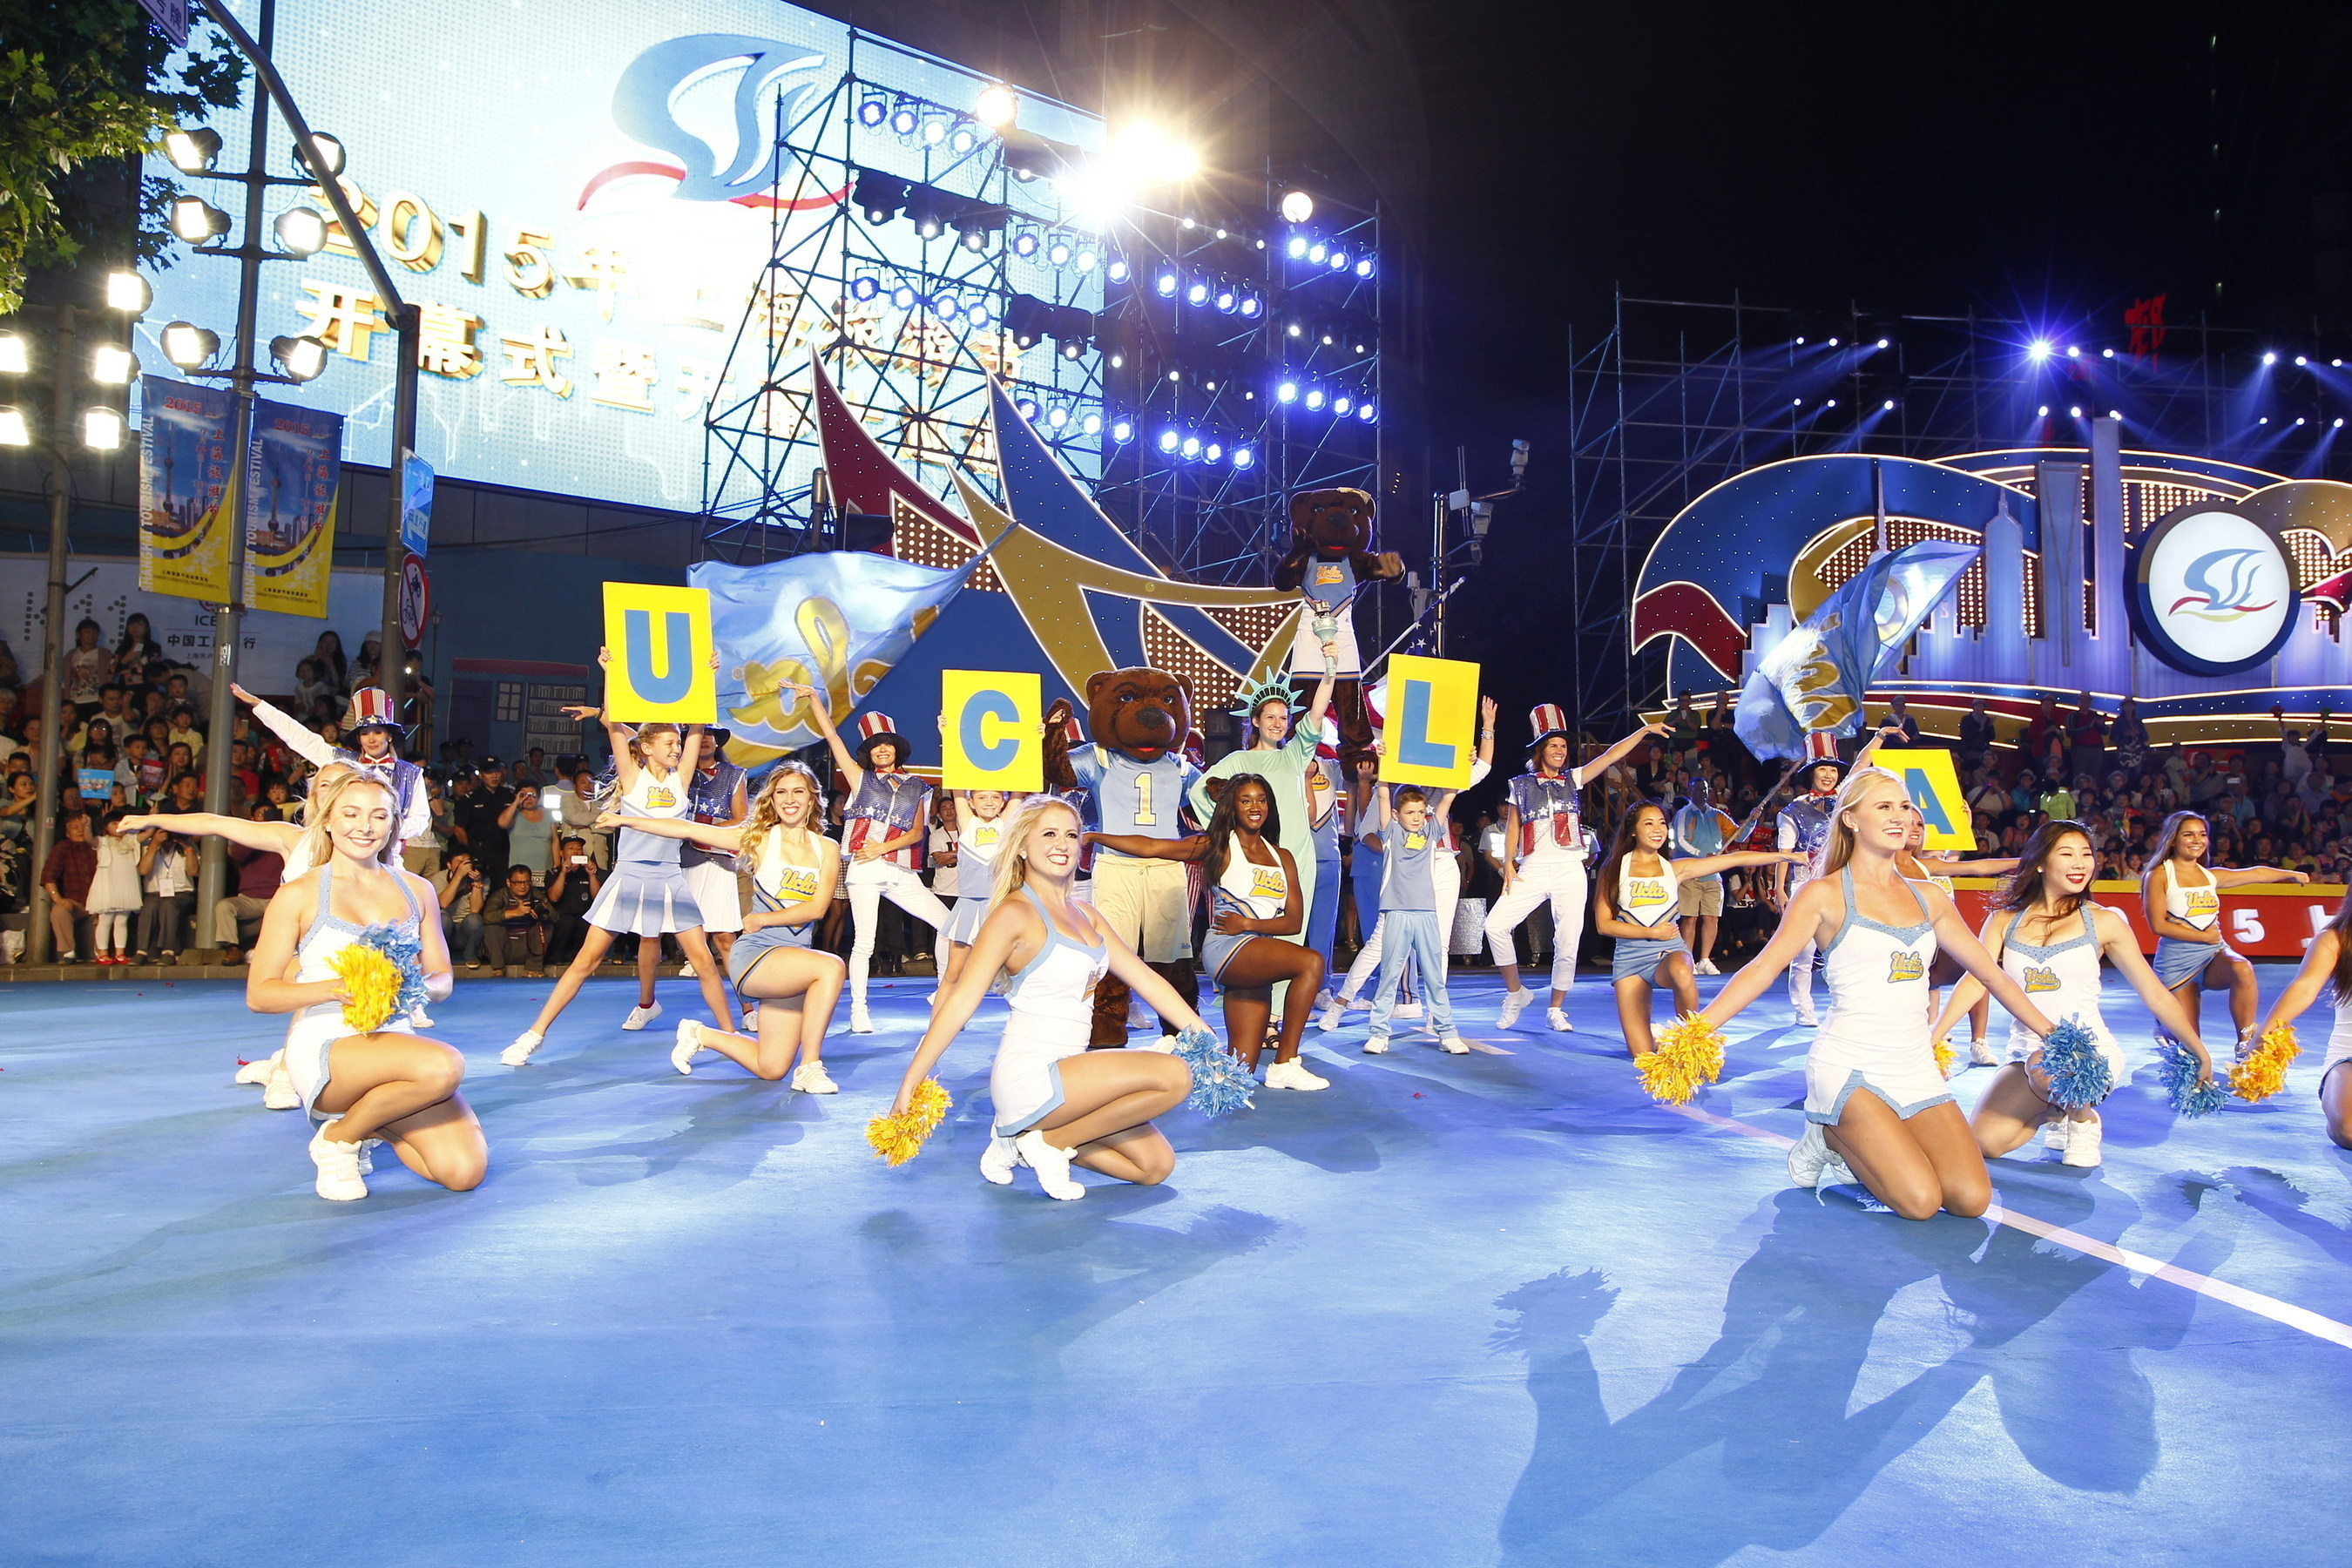 The cheerleading squad from the University of California, Los Angeles (UCLA) in the United States